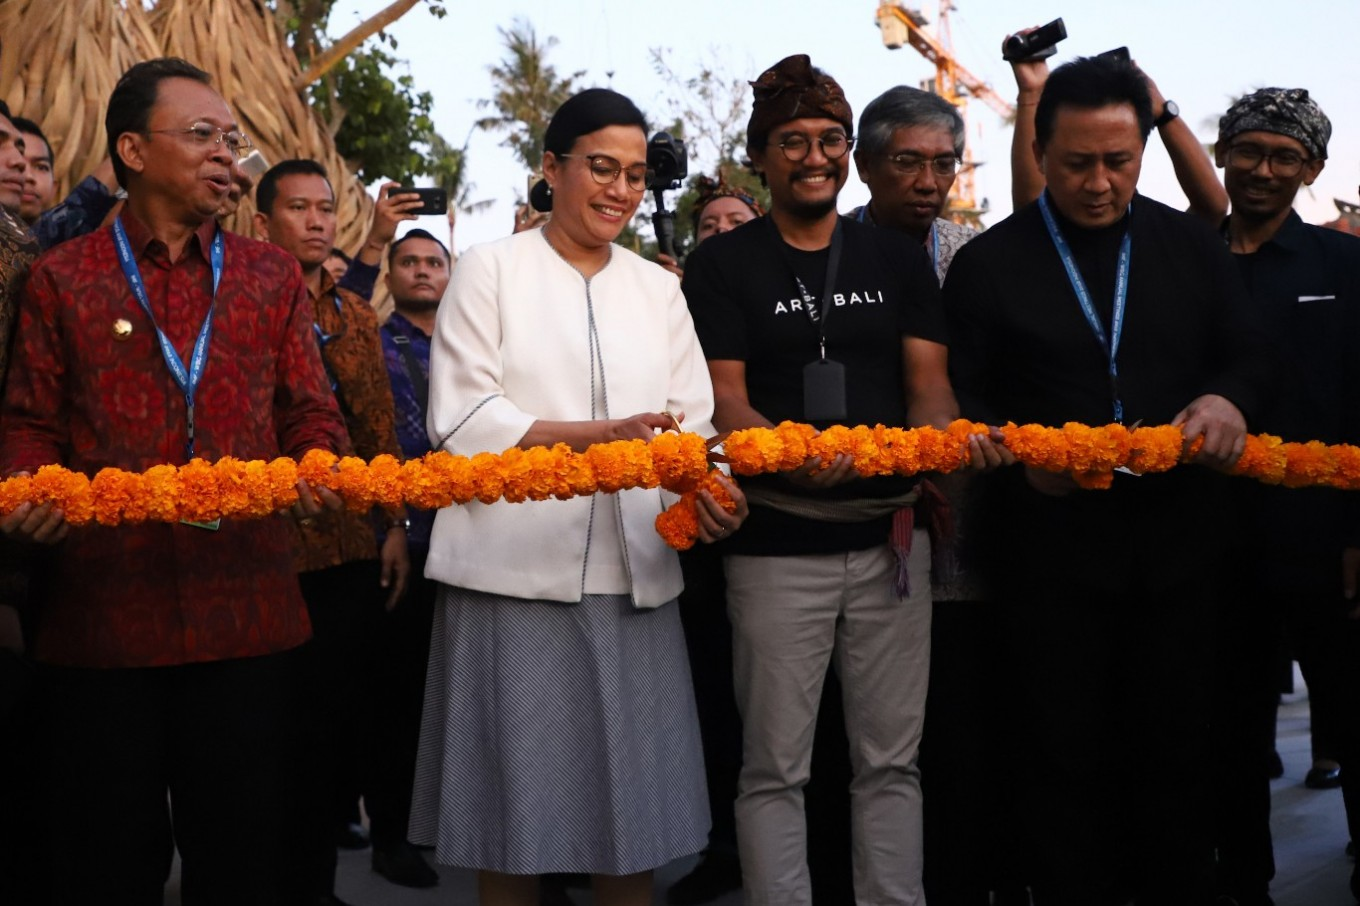 Finance Minister Sri Mulyani, Art Bali founder Heri Pemad and Bekraf head Triawan Munaf at the official opening of Art Bali.